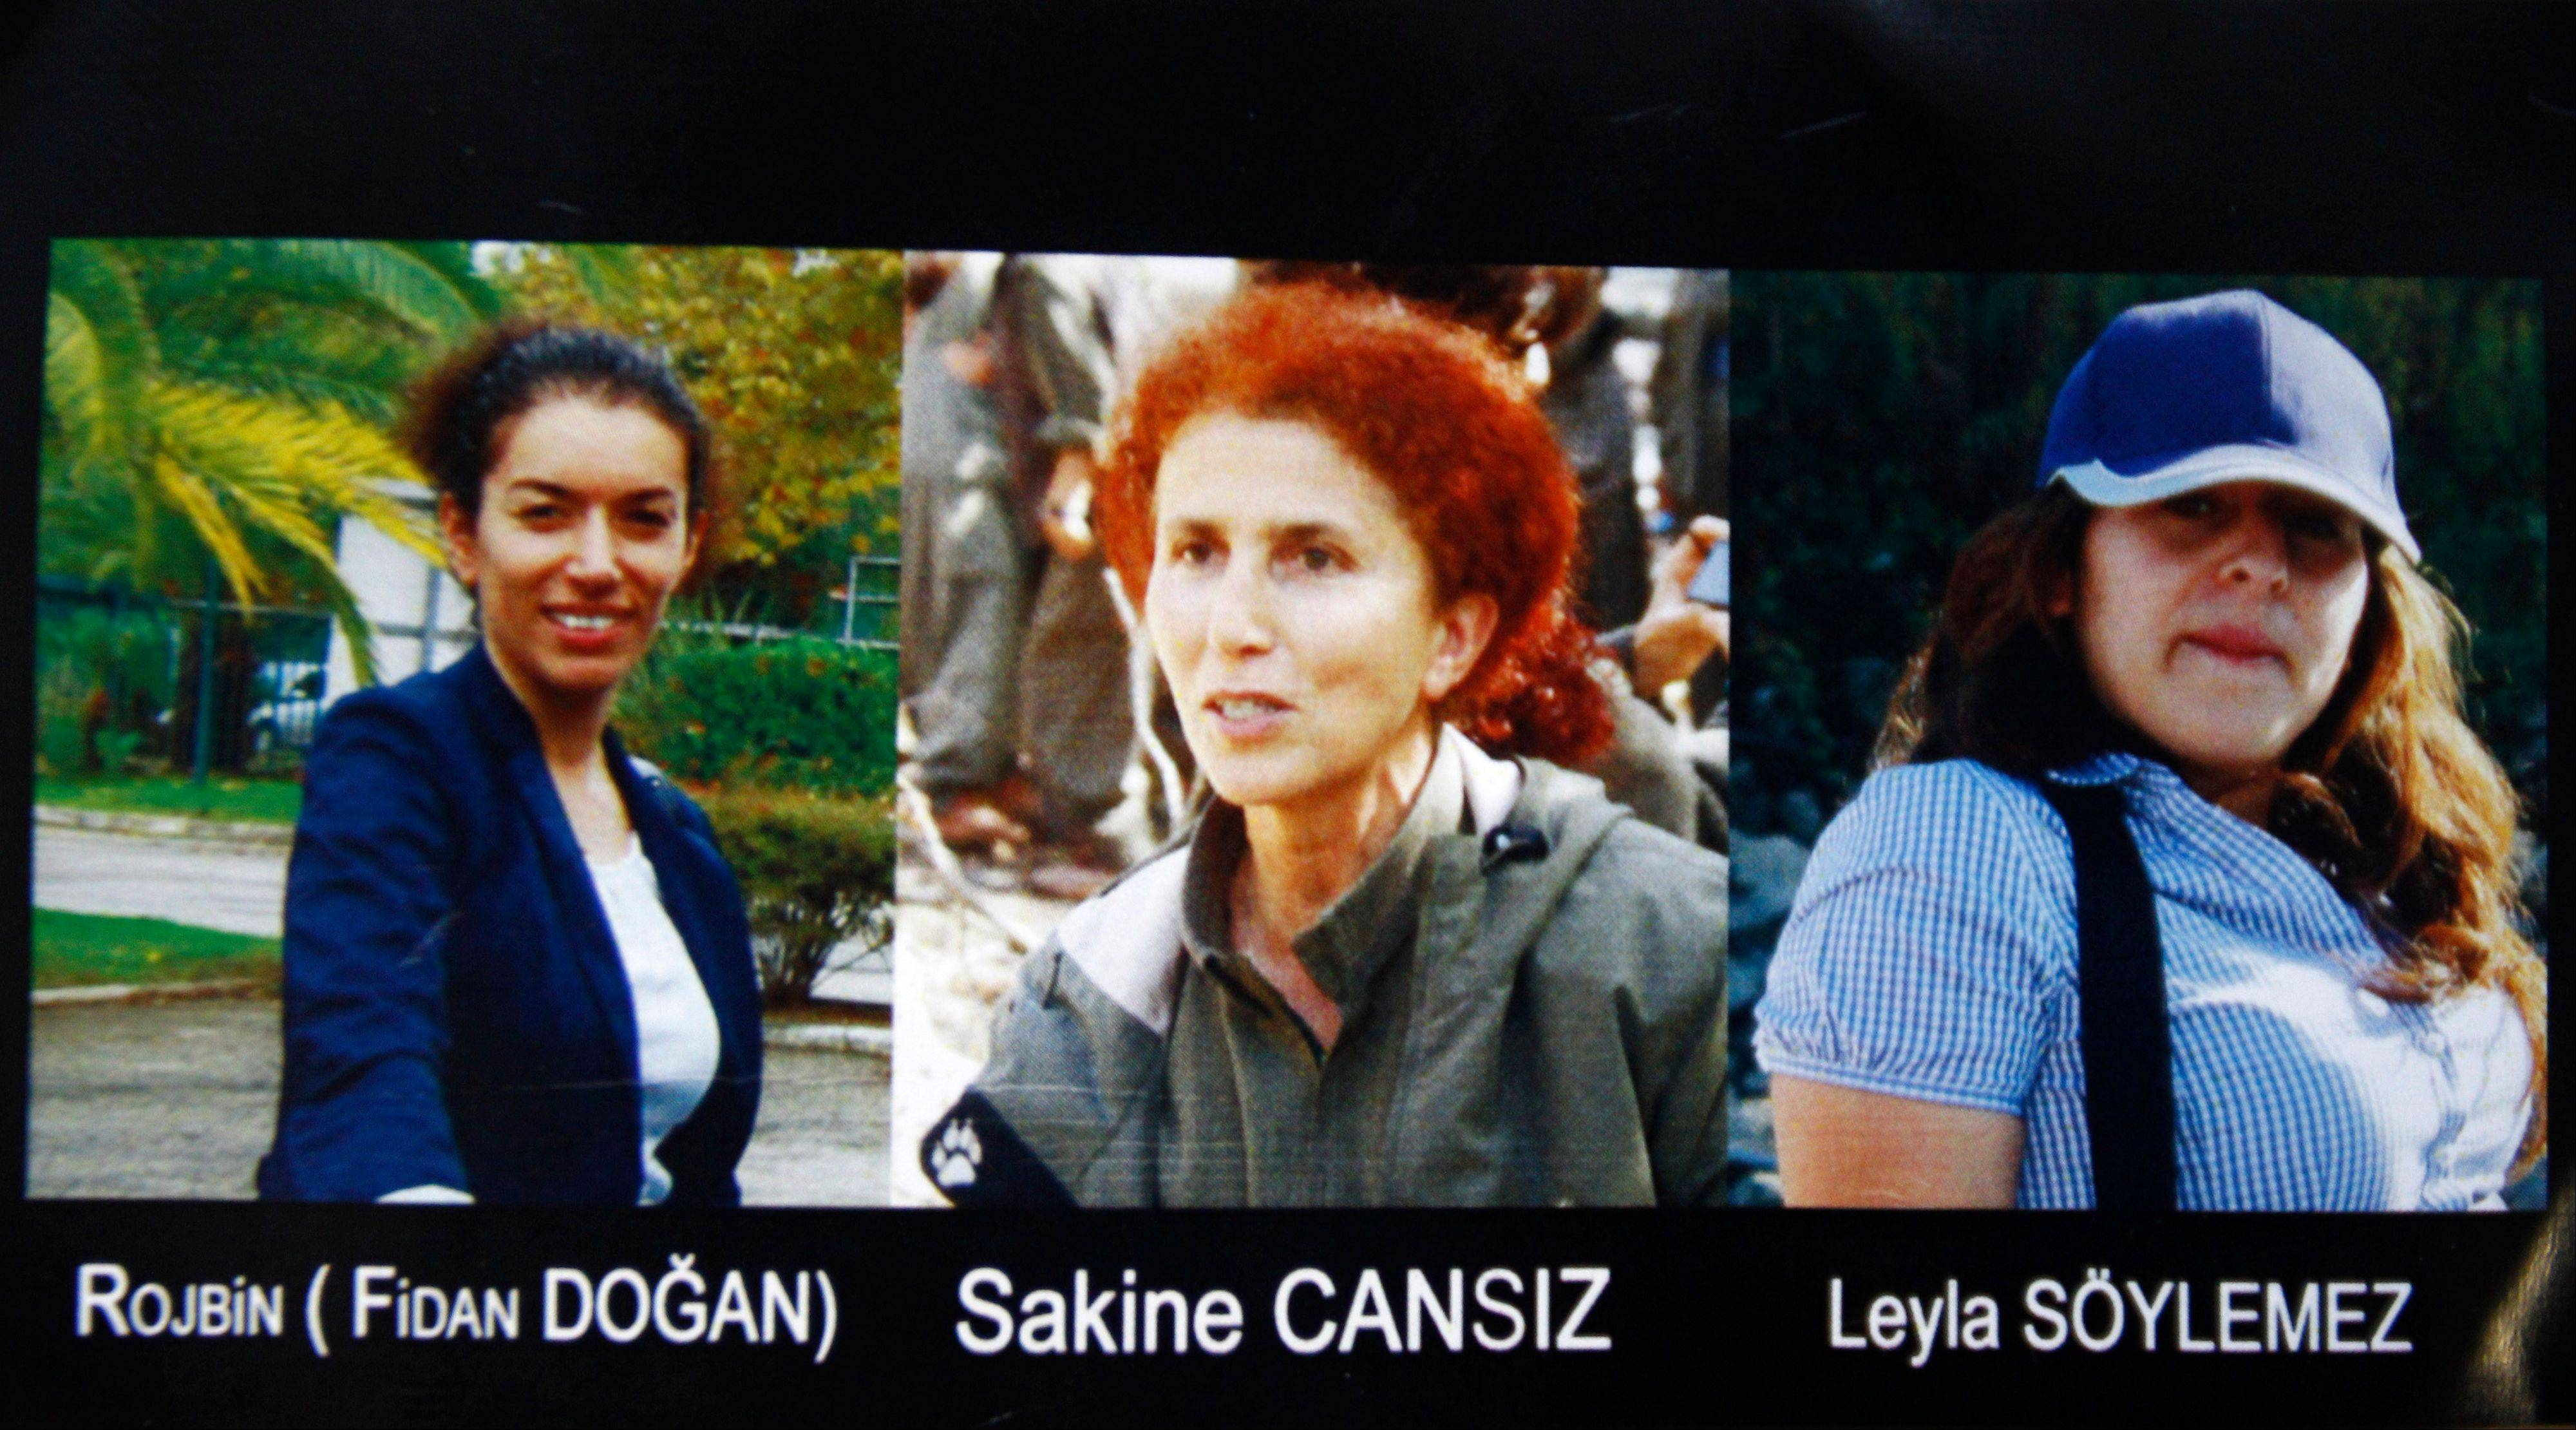 This combination photo provided by the Kurdish Cultural center in Paris shows the three victims �executed� in Paris. Fidan Dogan, left, Sakine Cansiz, center, and Leyla Soylemez. Cansiz was a founding member of the Kurdistan Workers Party, or PKK.